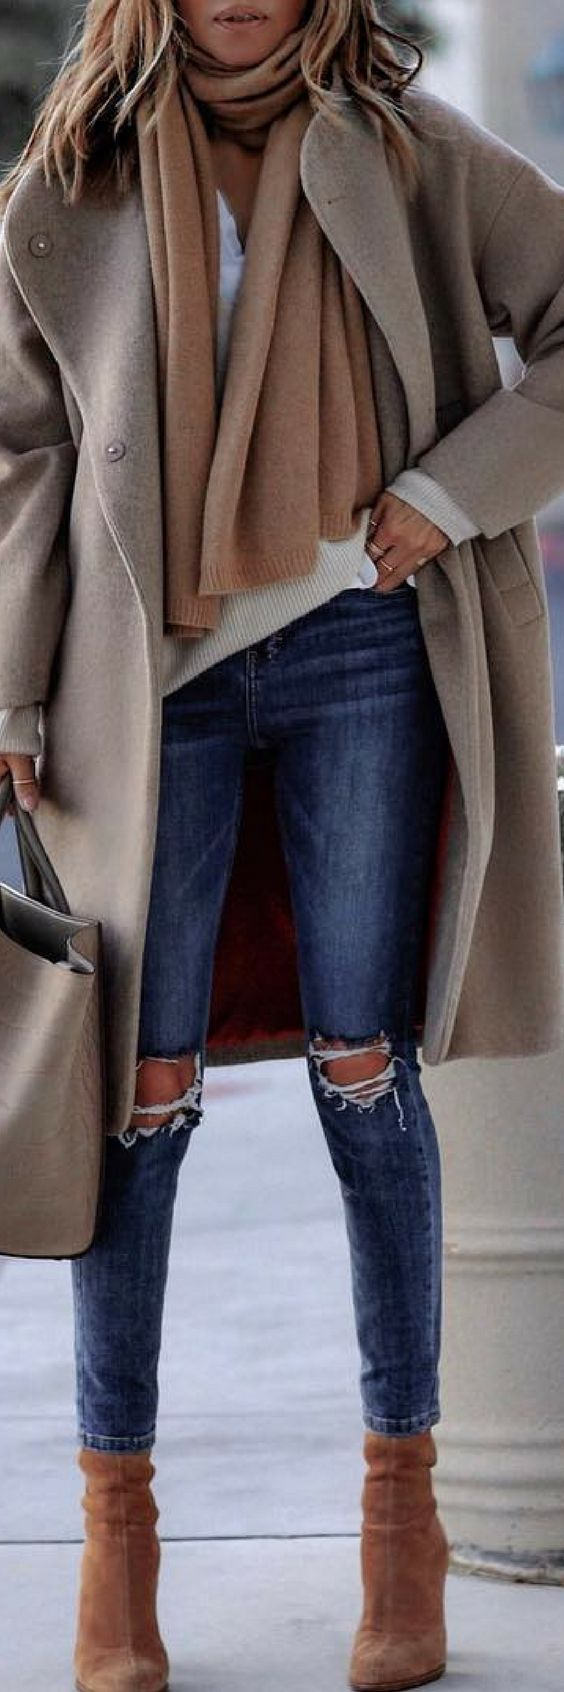 How To Style 10 Of The Most Remarkable Christmas Outfits https://ecstasymodels.blog/2017/11/22/style-10-remarkable-christmas-outfits/